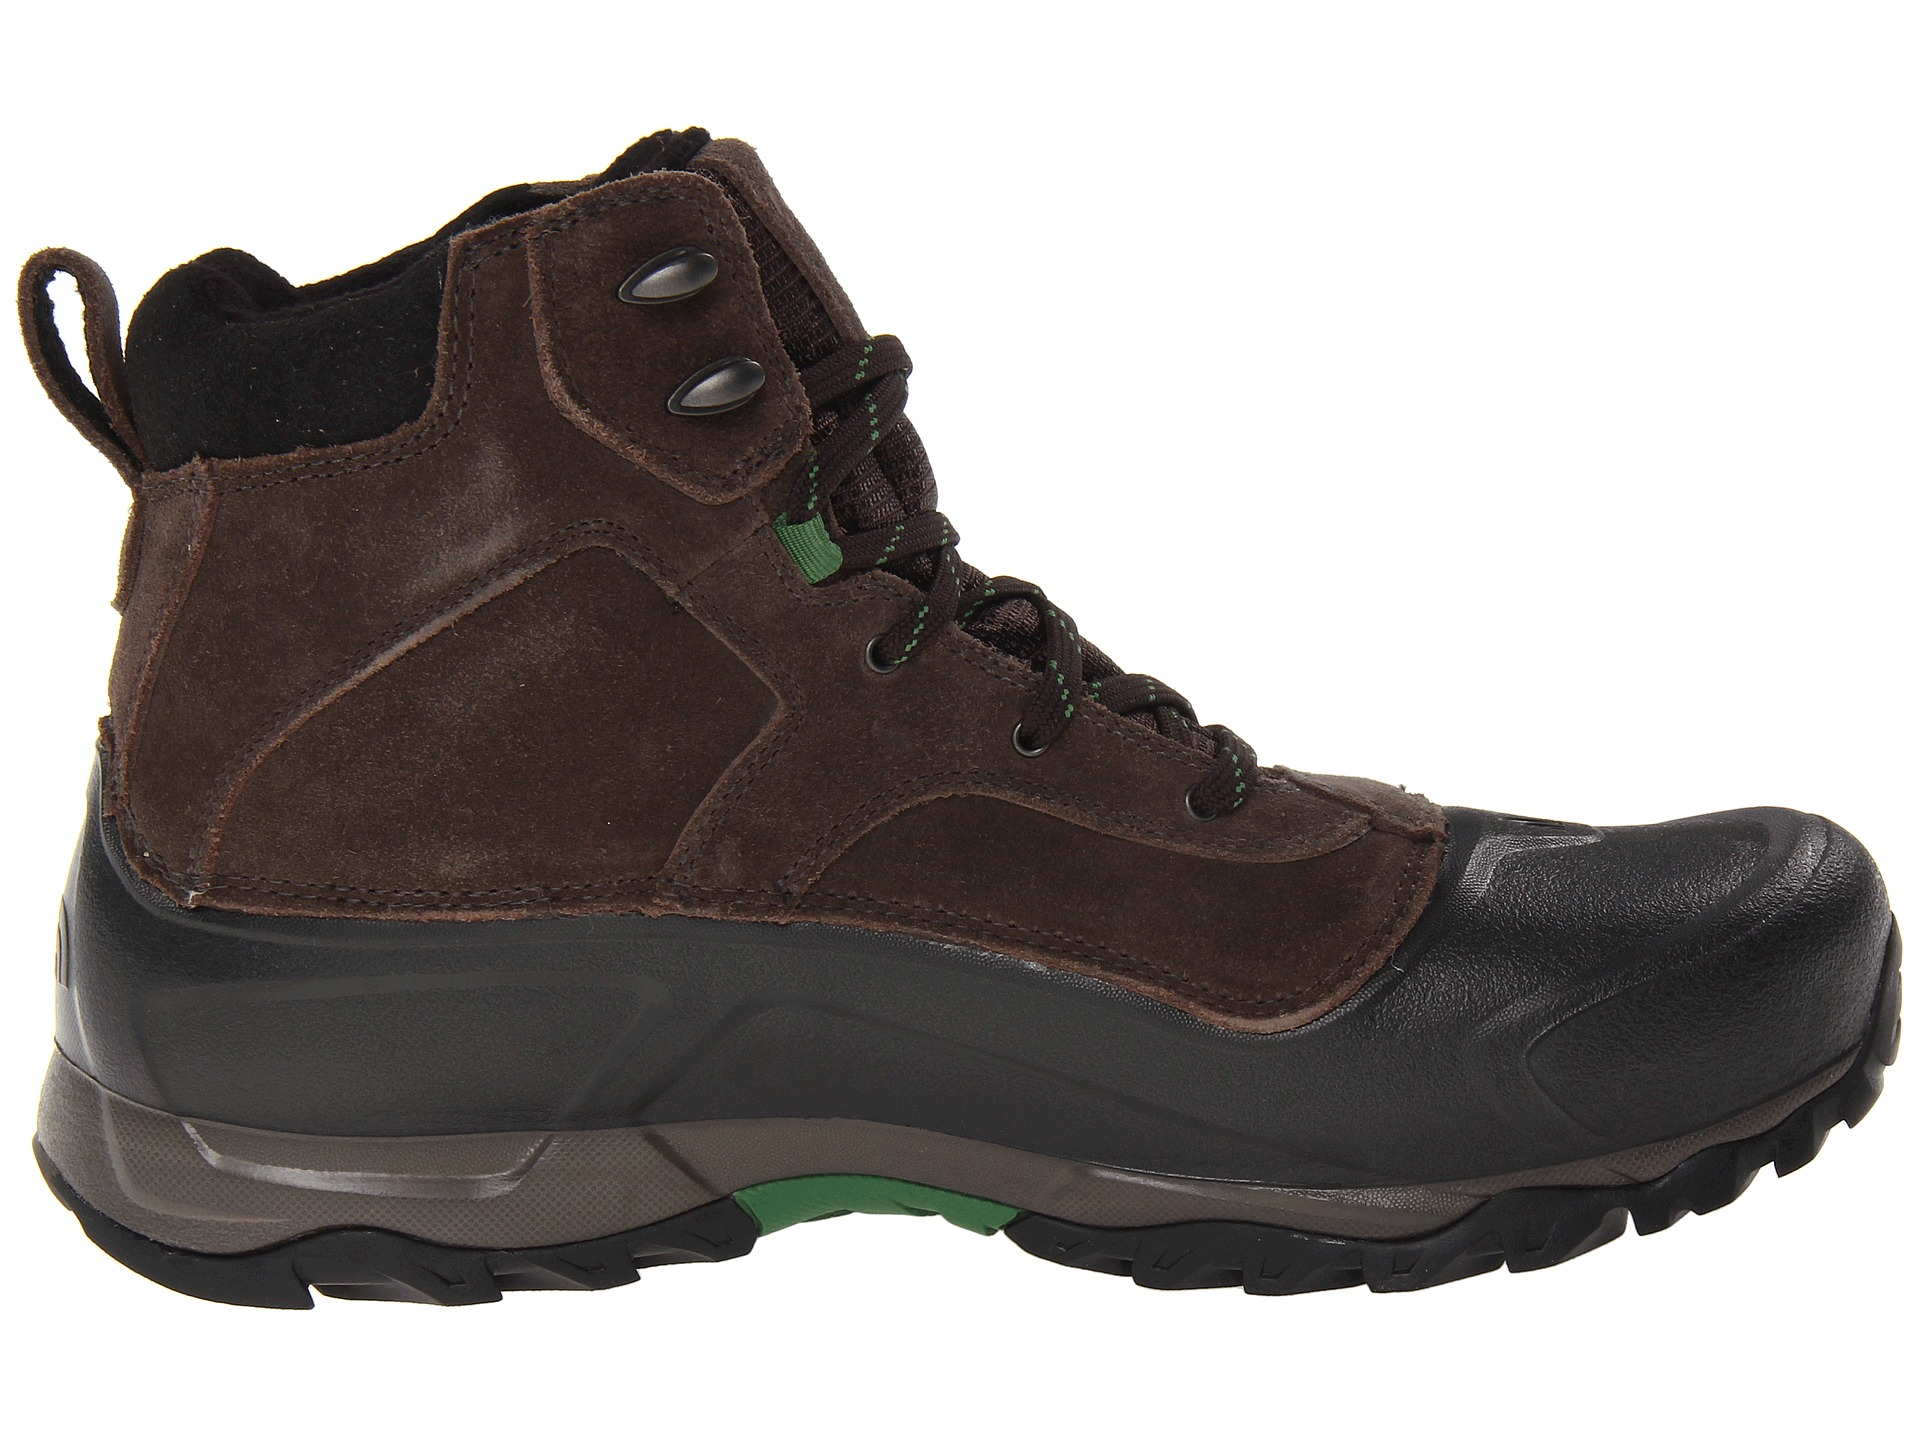 Free shipping BOTH ways on the north face boots, from our vast selection of styles. Fast delivery, and 24/7/ real-person service with a smile. Click or call